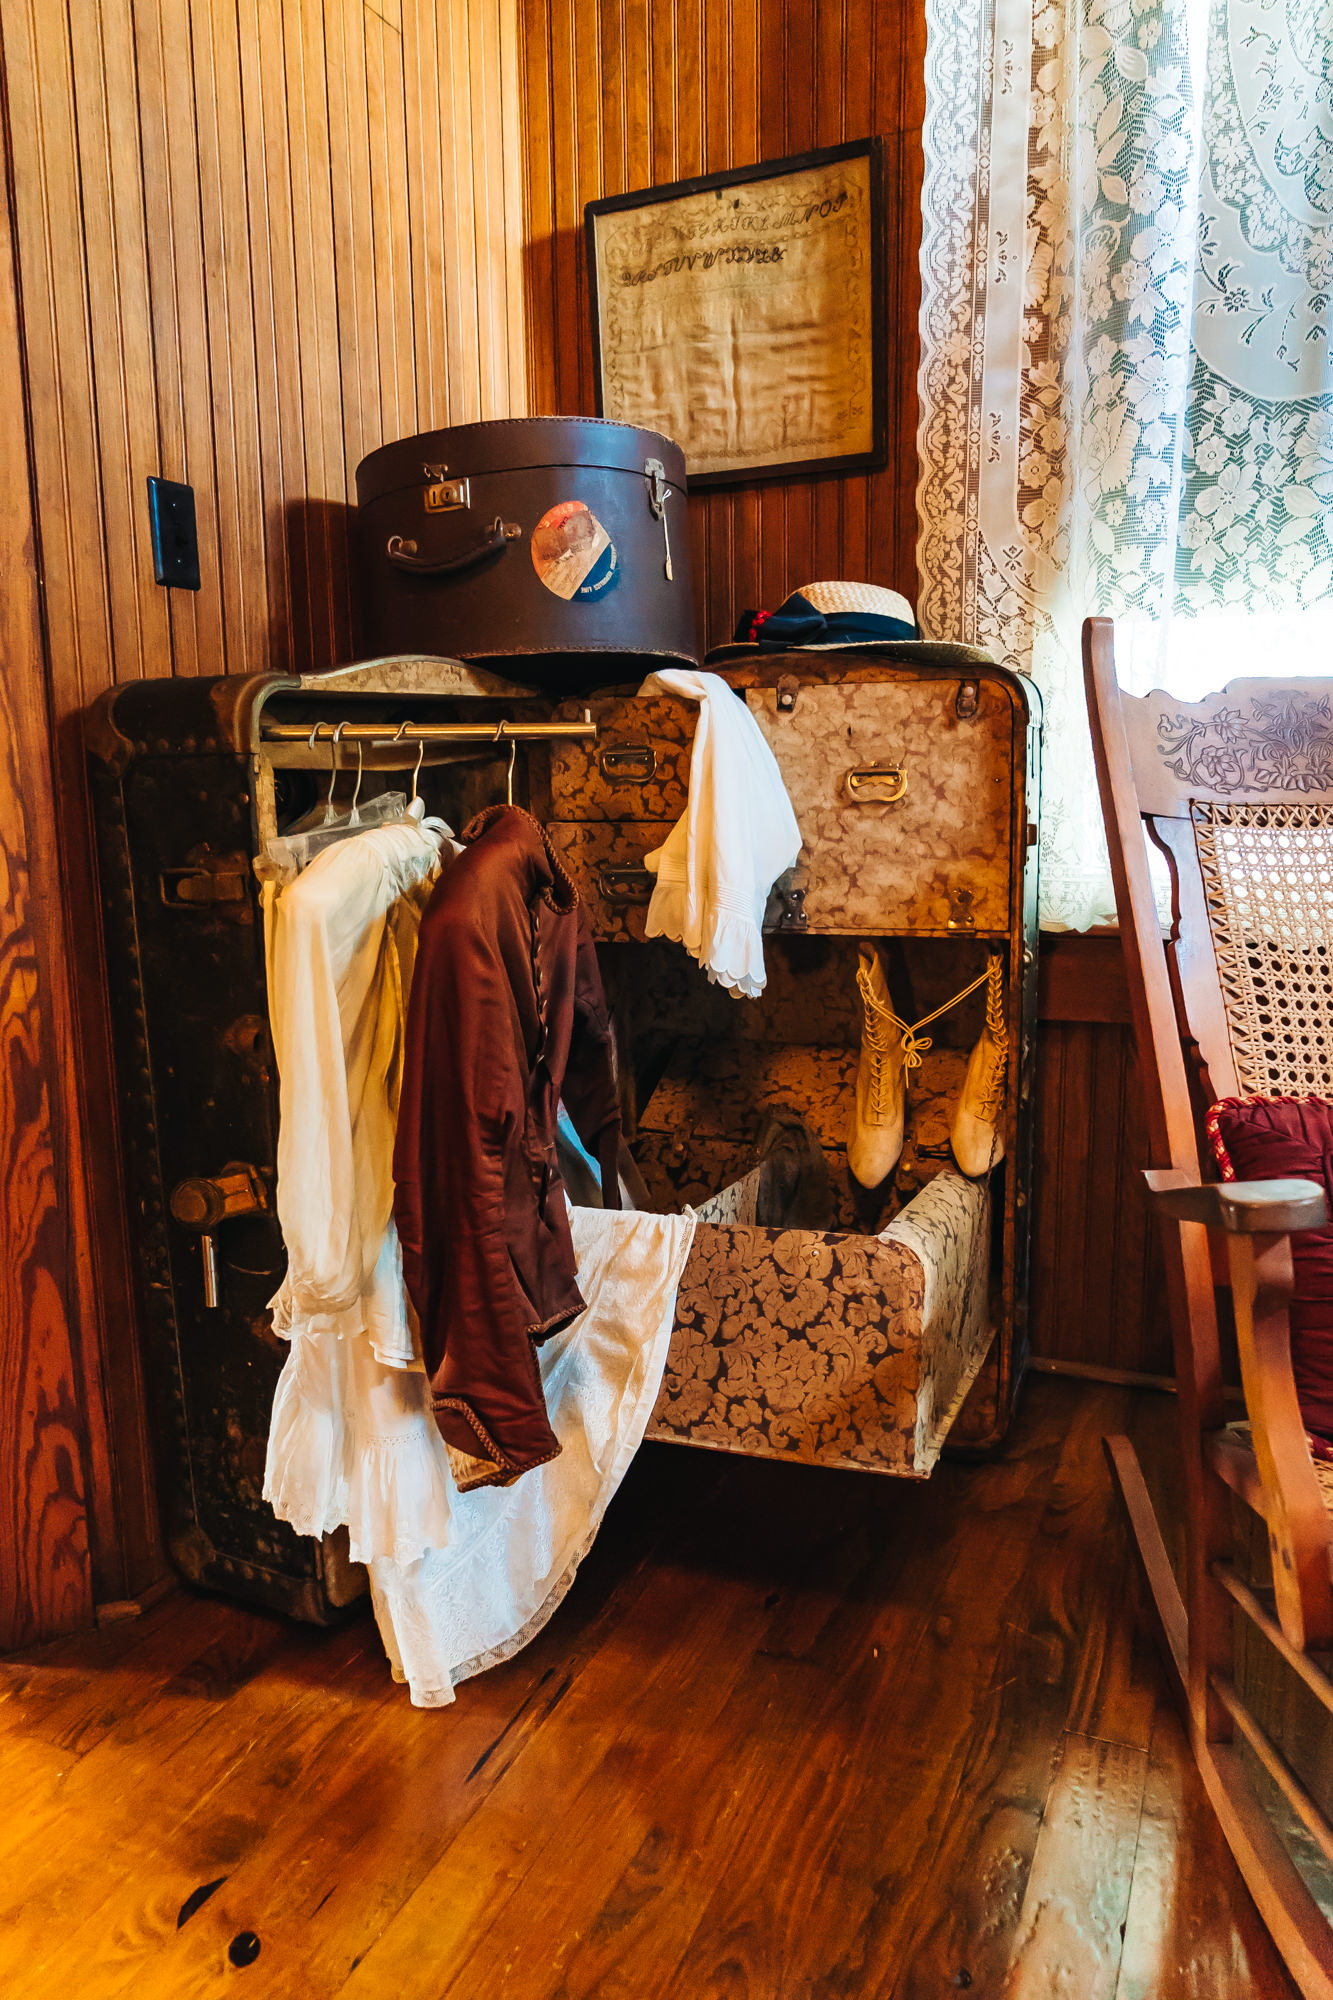 A SUITCASE TURNED INTO A CLOSET IN ONE OF THE GUEST ROOMS